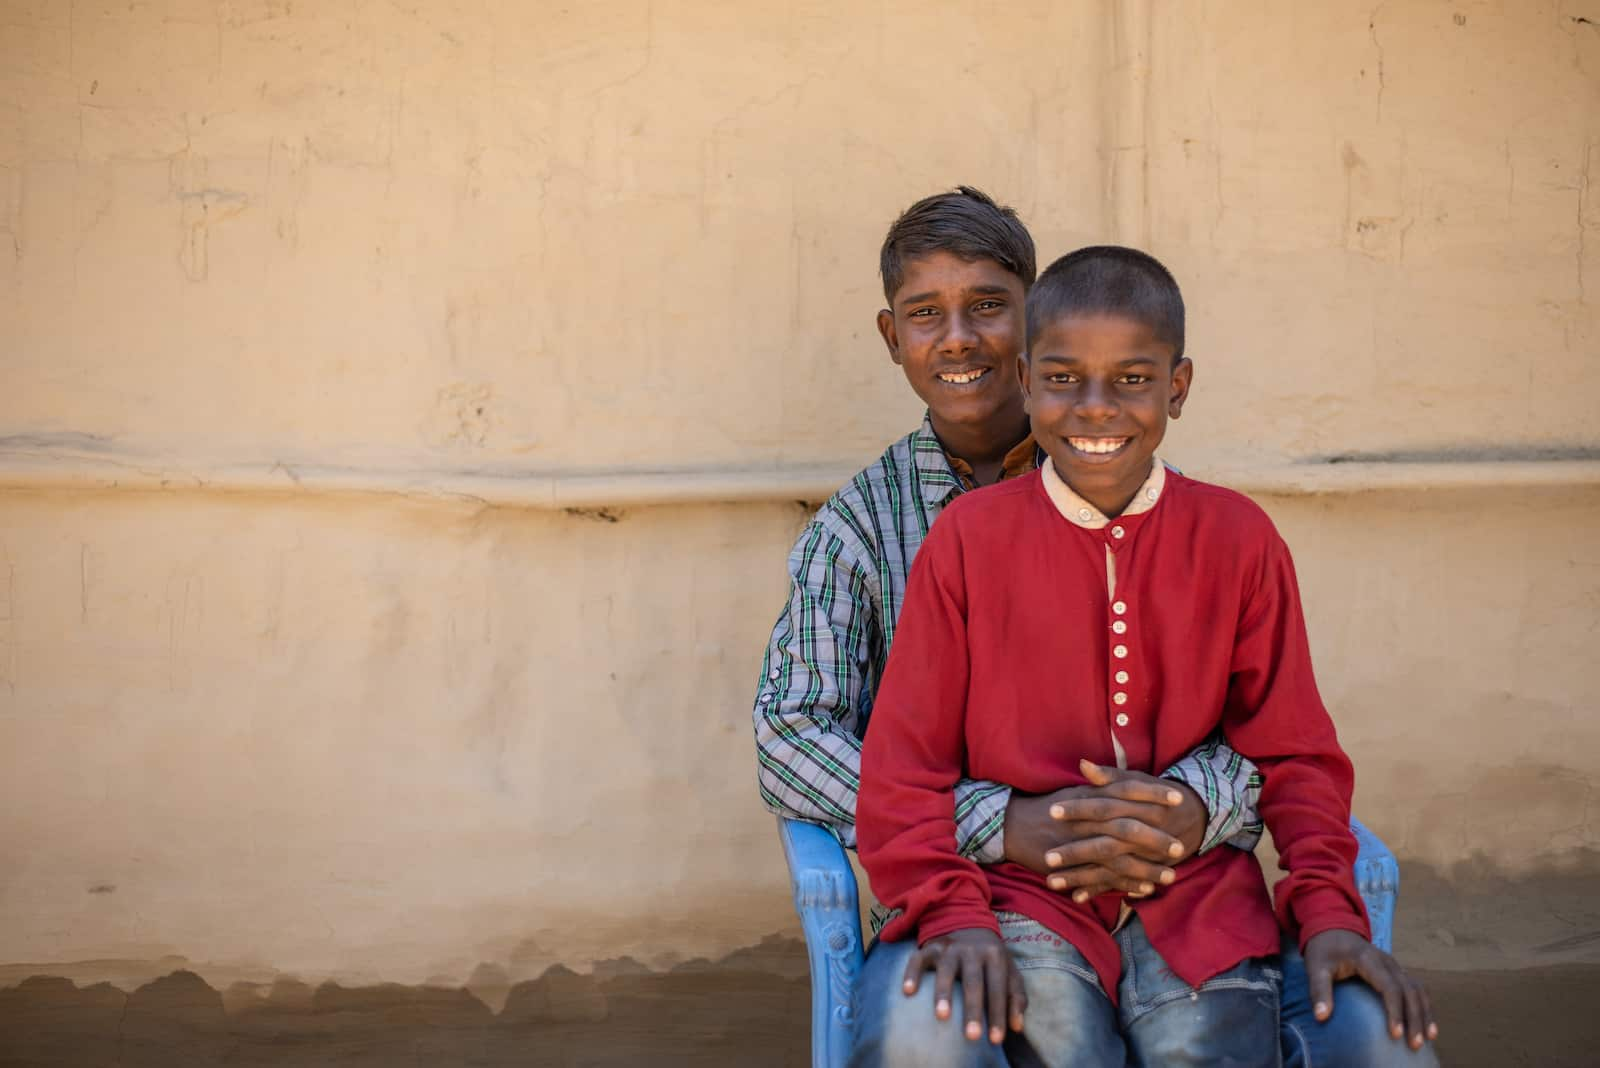 A young smiling boy wearing a red shirt sits in the lap of a smiling teenager wearing a blue plaid shirt, with his hands clasped around his brother.